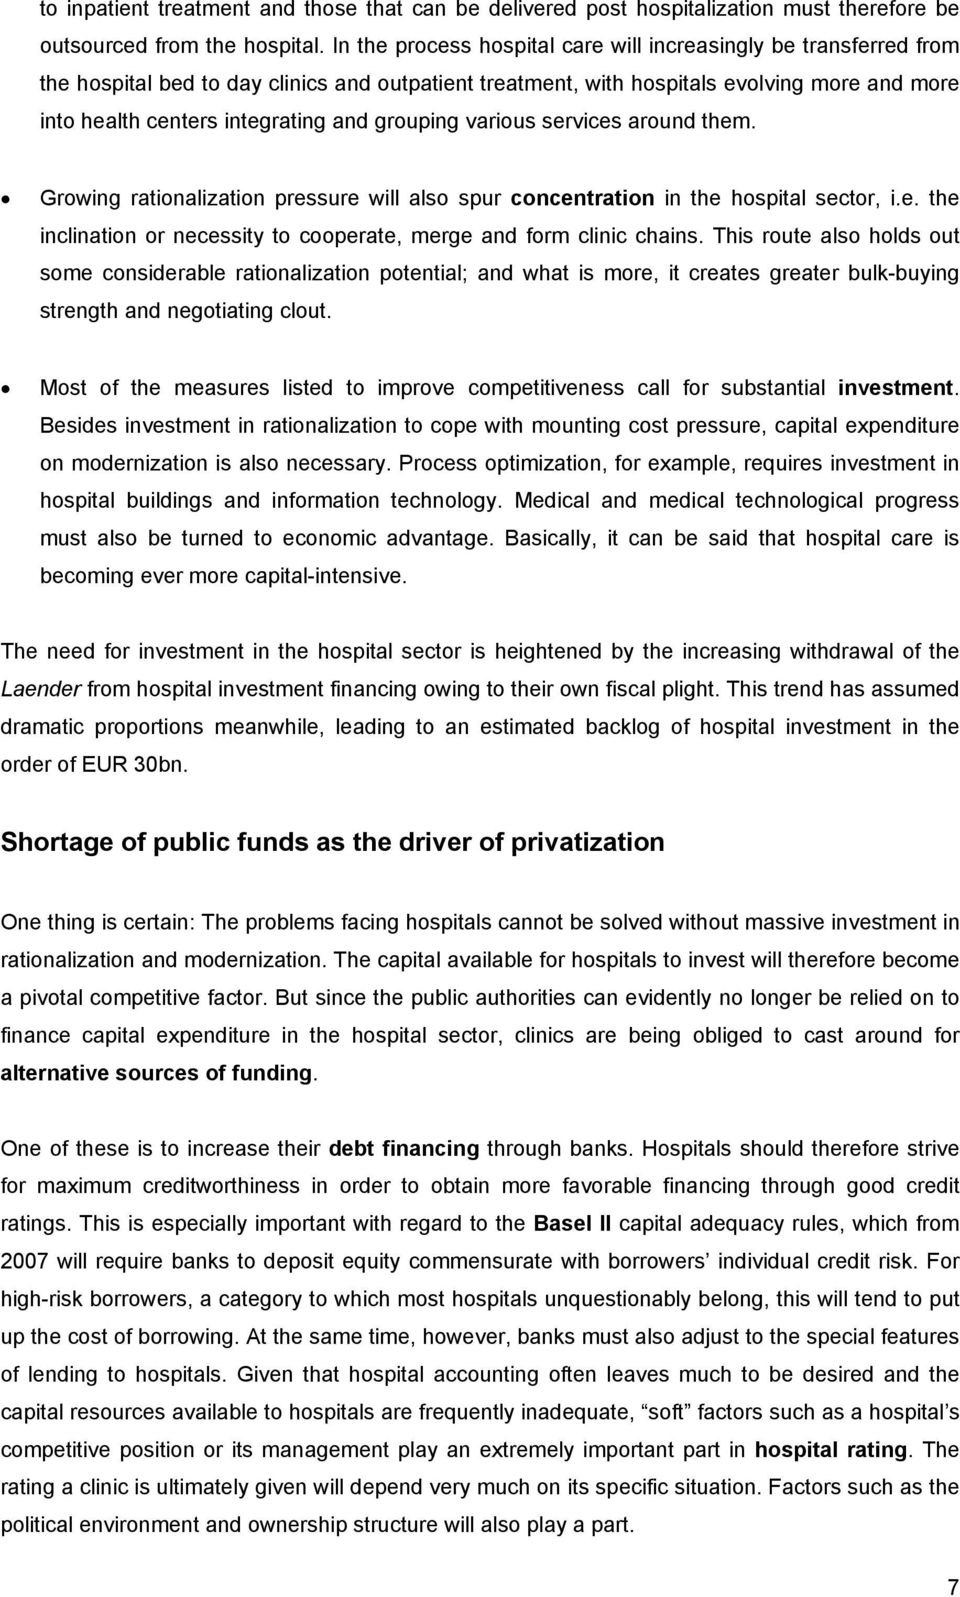 grouping various services around them. Growing rationalization pressure will also spur concentration in the hospital sector, i.e. the inclination or necessity to cooperate, merge and form clinic chains.